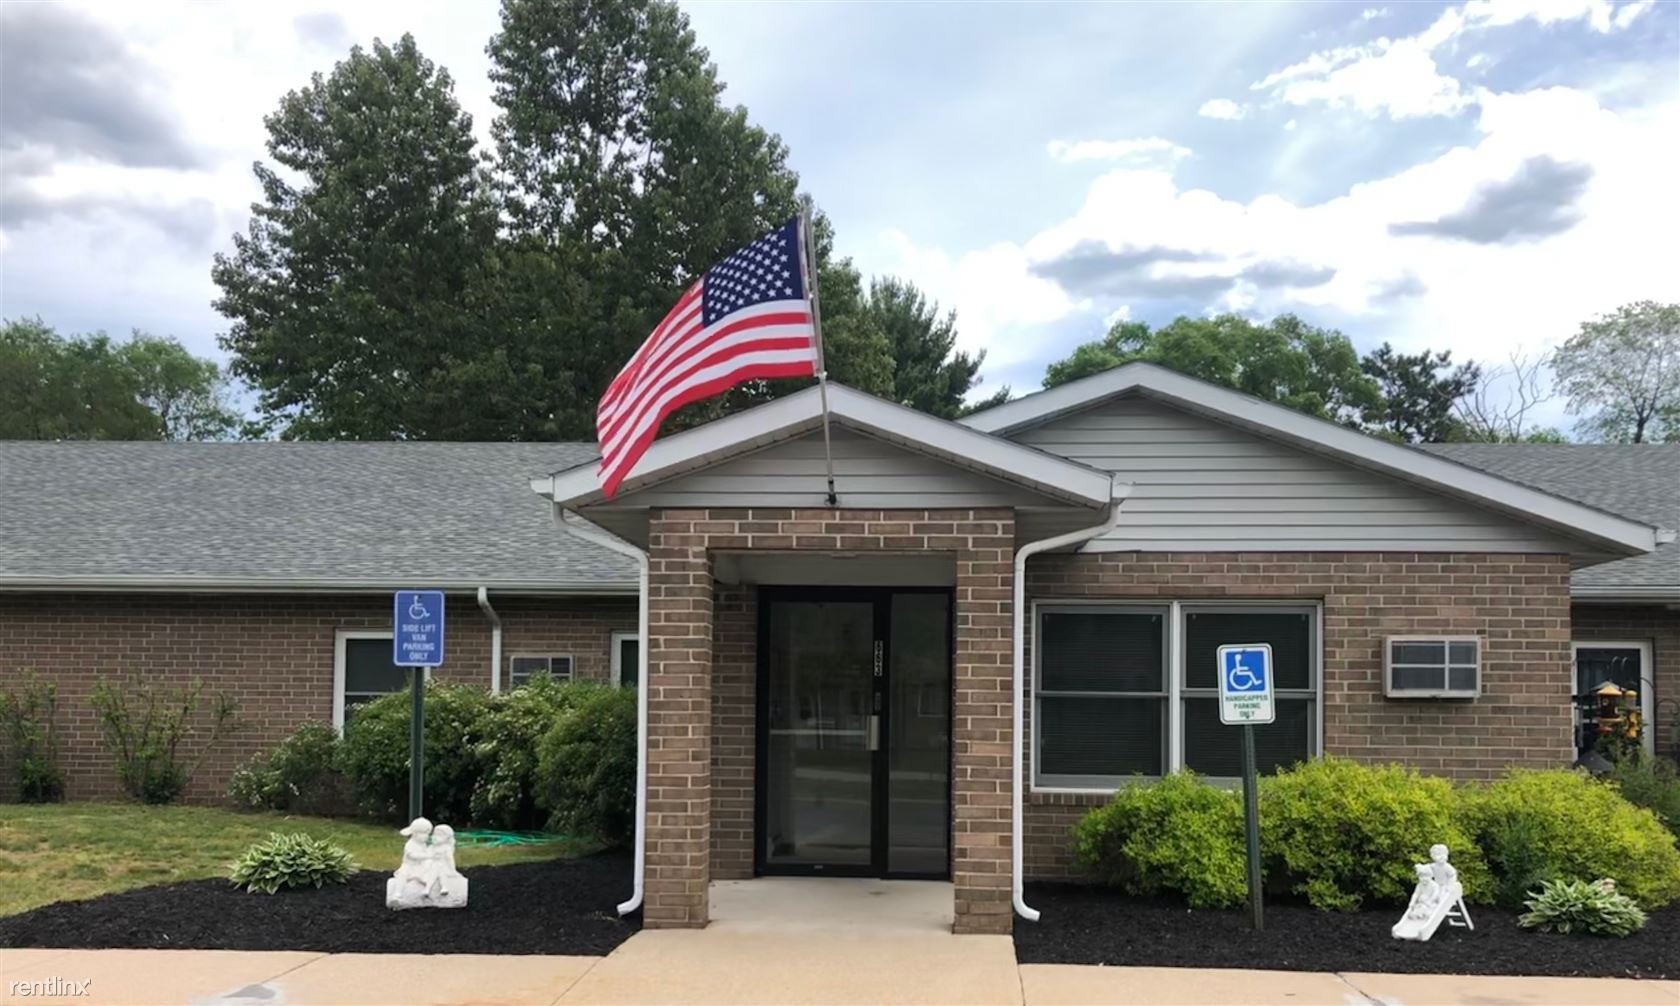 663 S Waupaca St, Wautoma, WI - Rent Based On Income